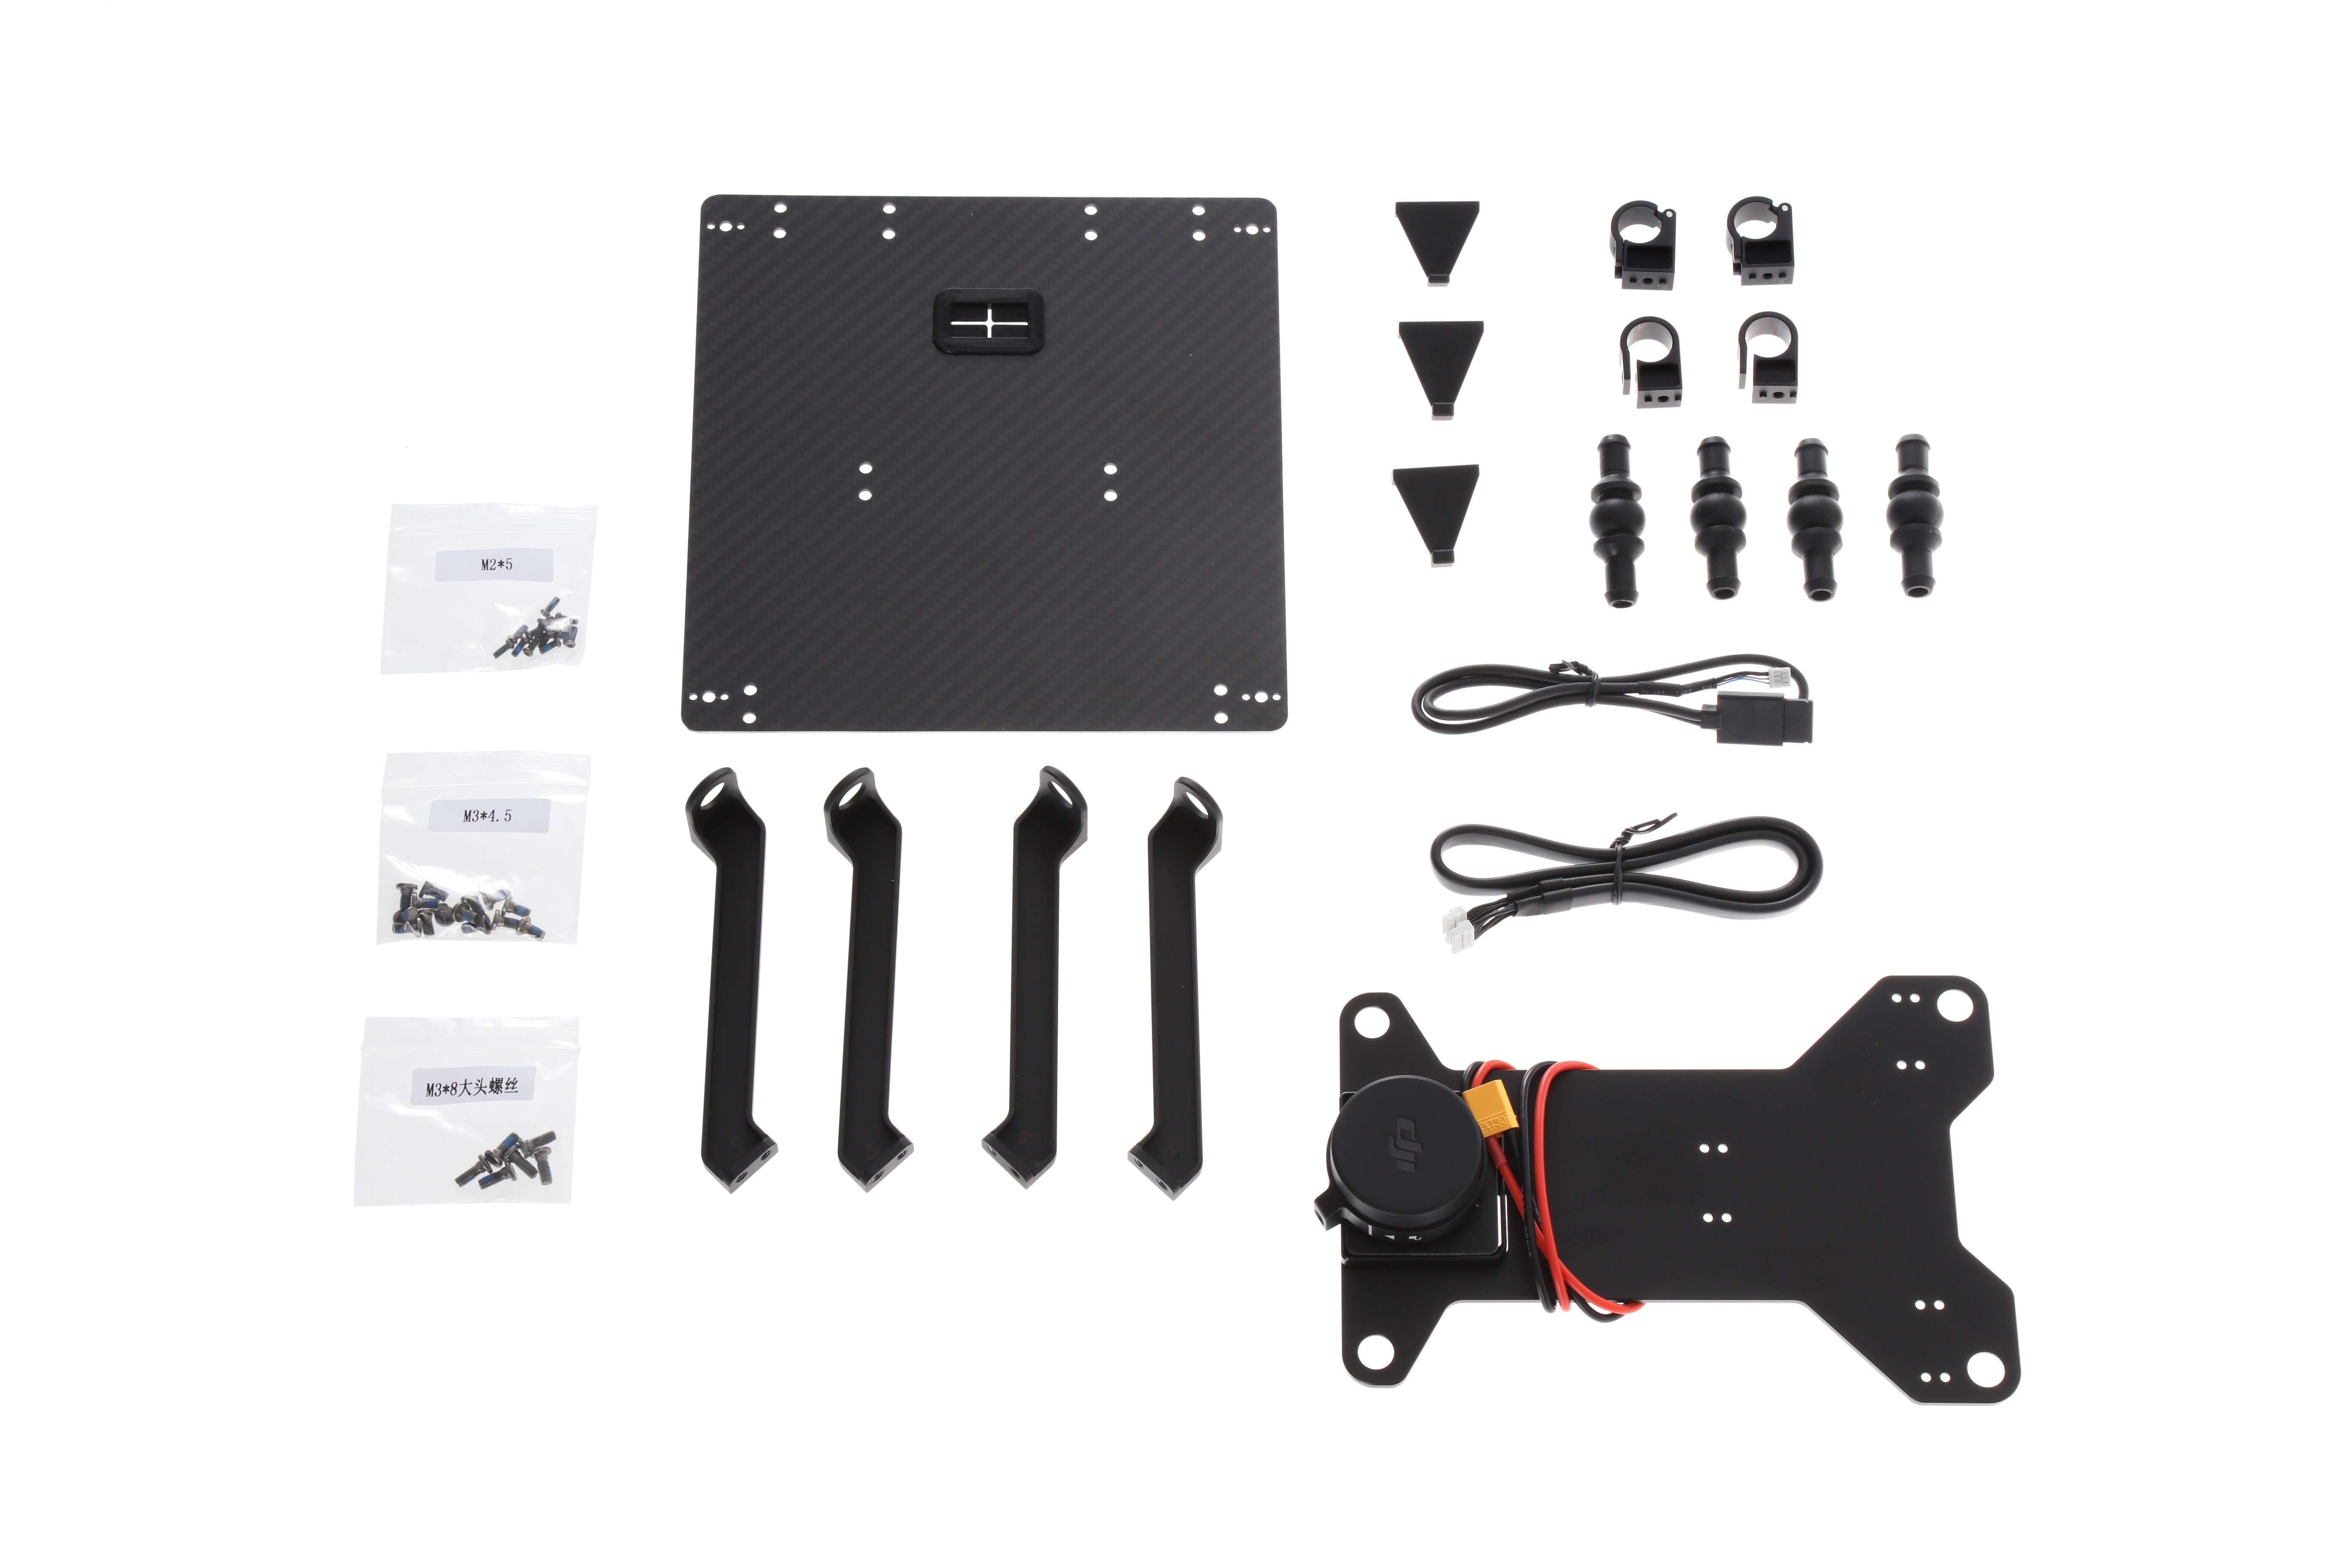 DJI Matrice 600 X3 X5 Gimbal Mounting Bracket Part 1 CP